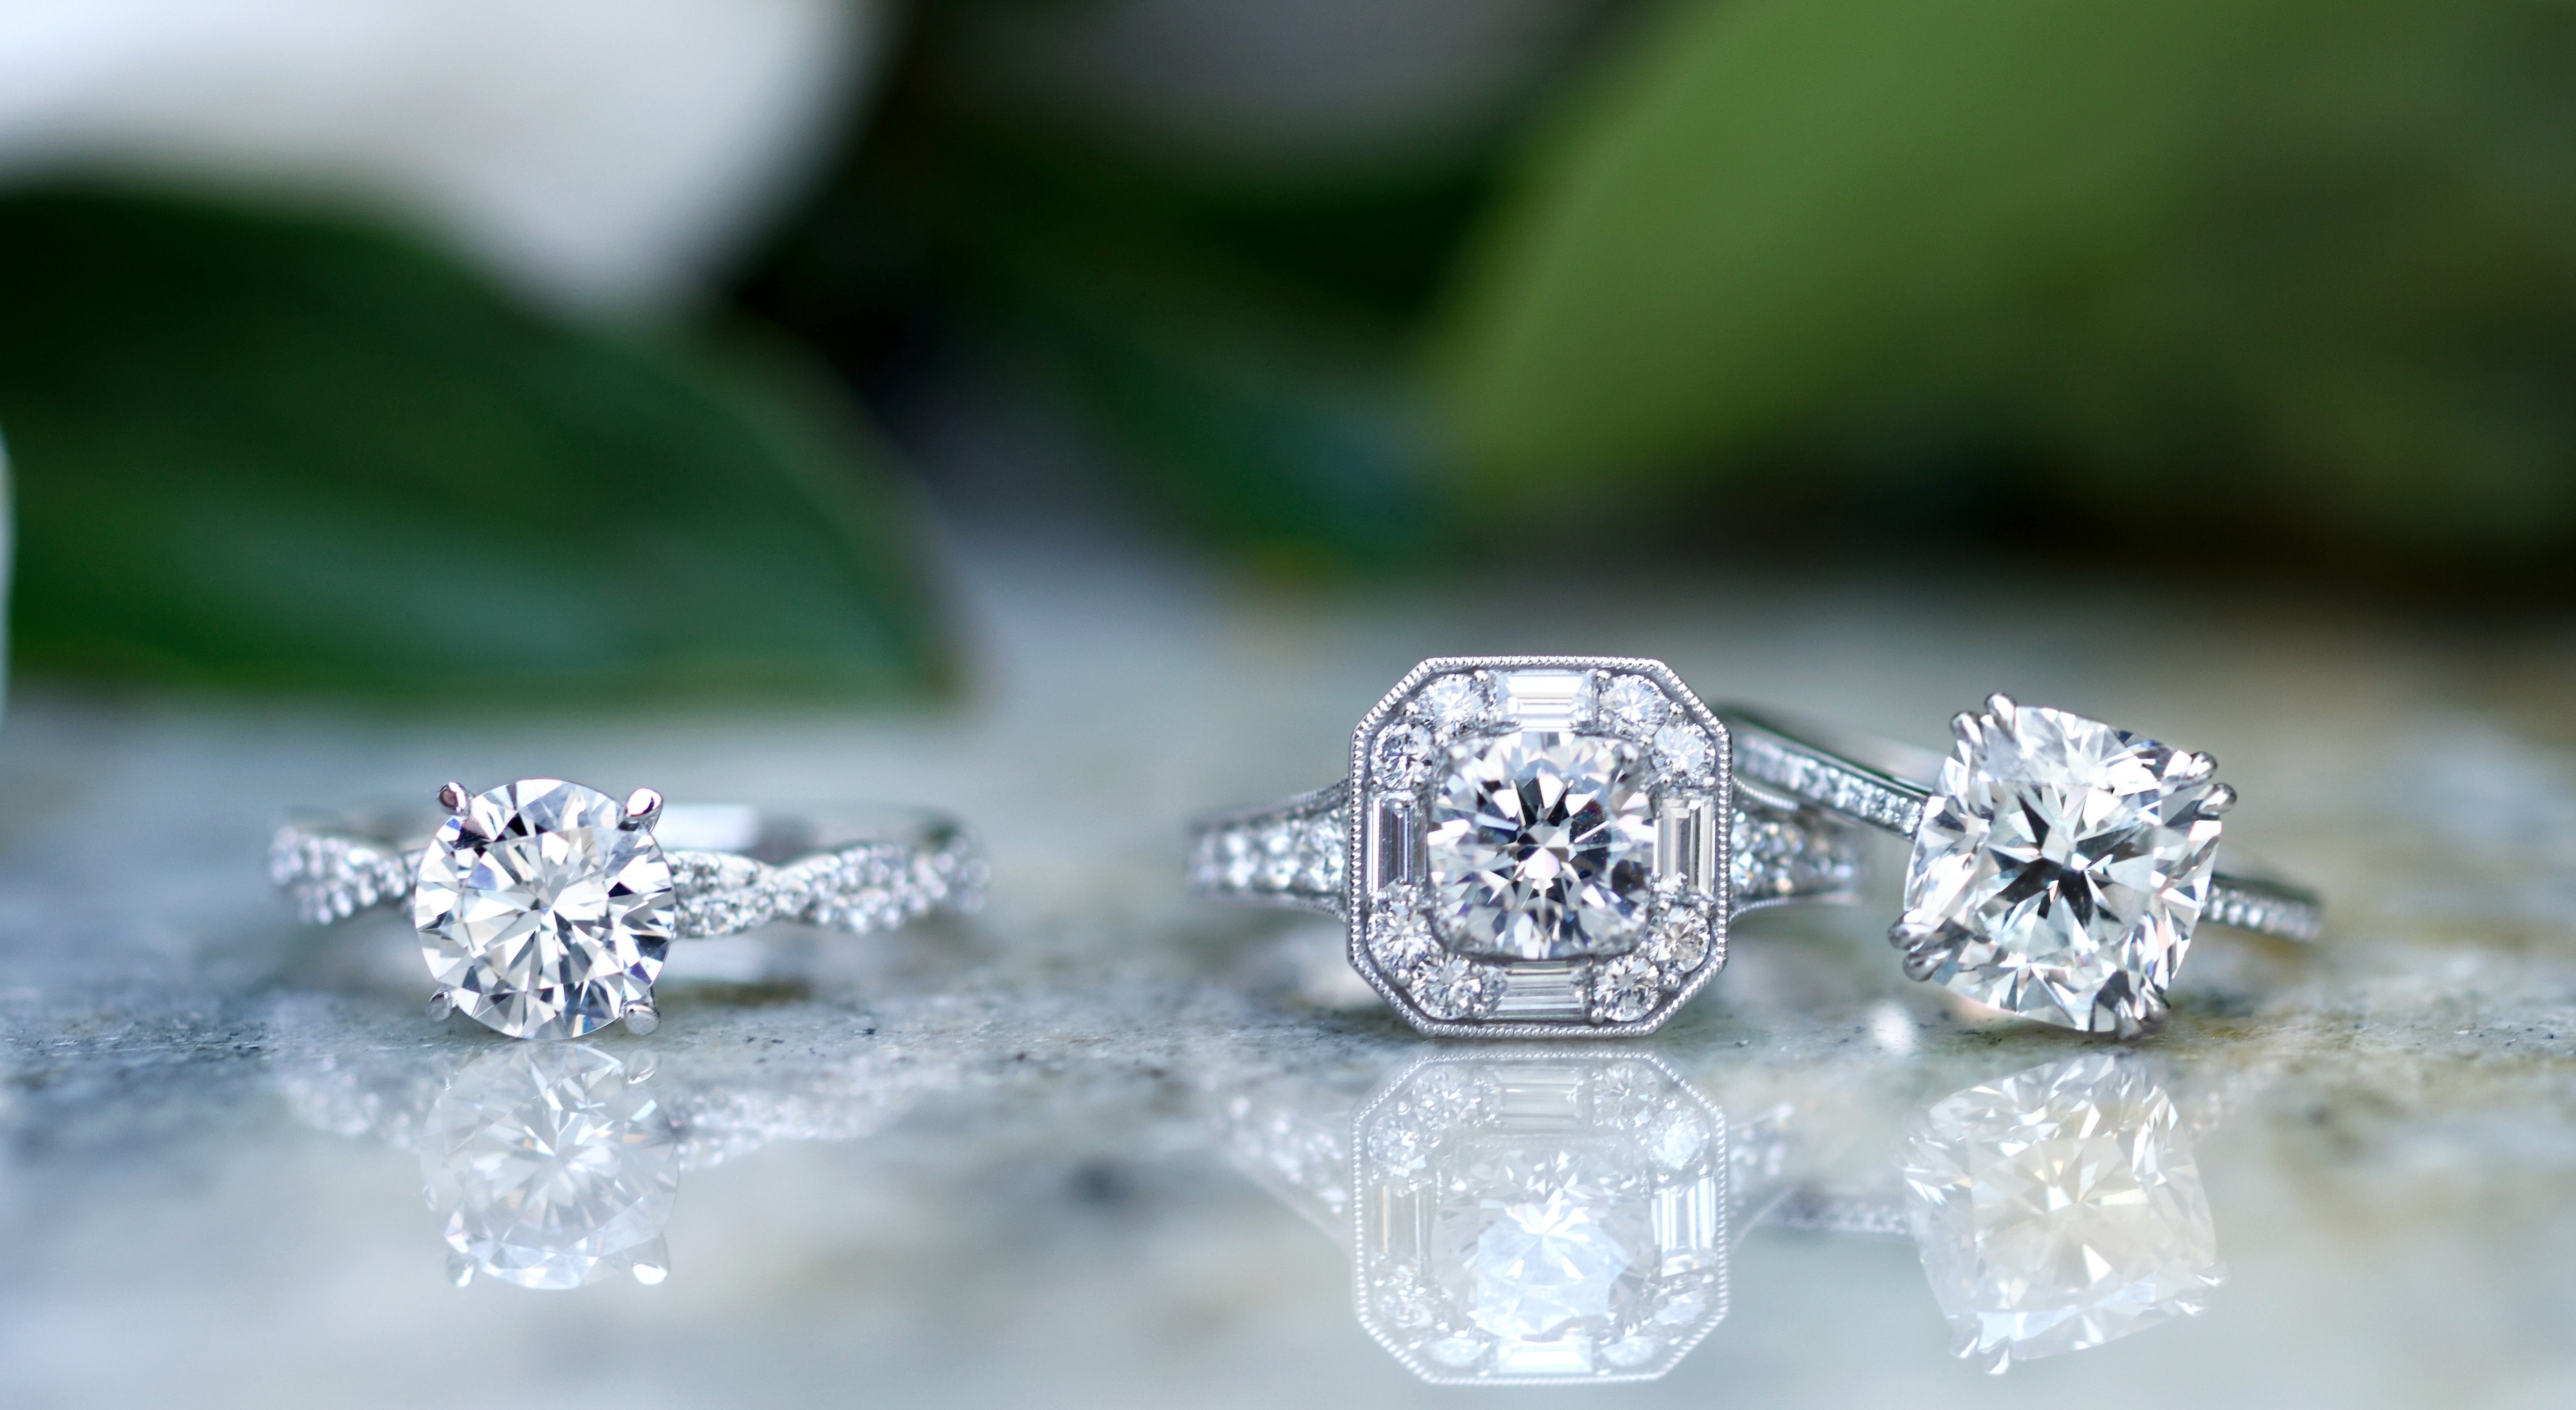 Top 5 Best Engagement Ring Settings